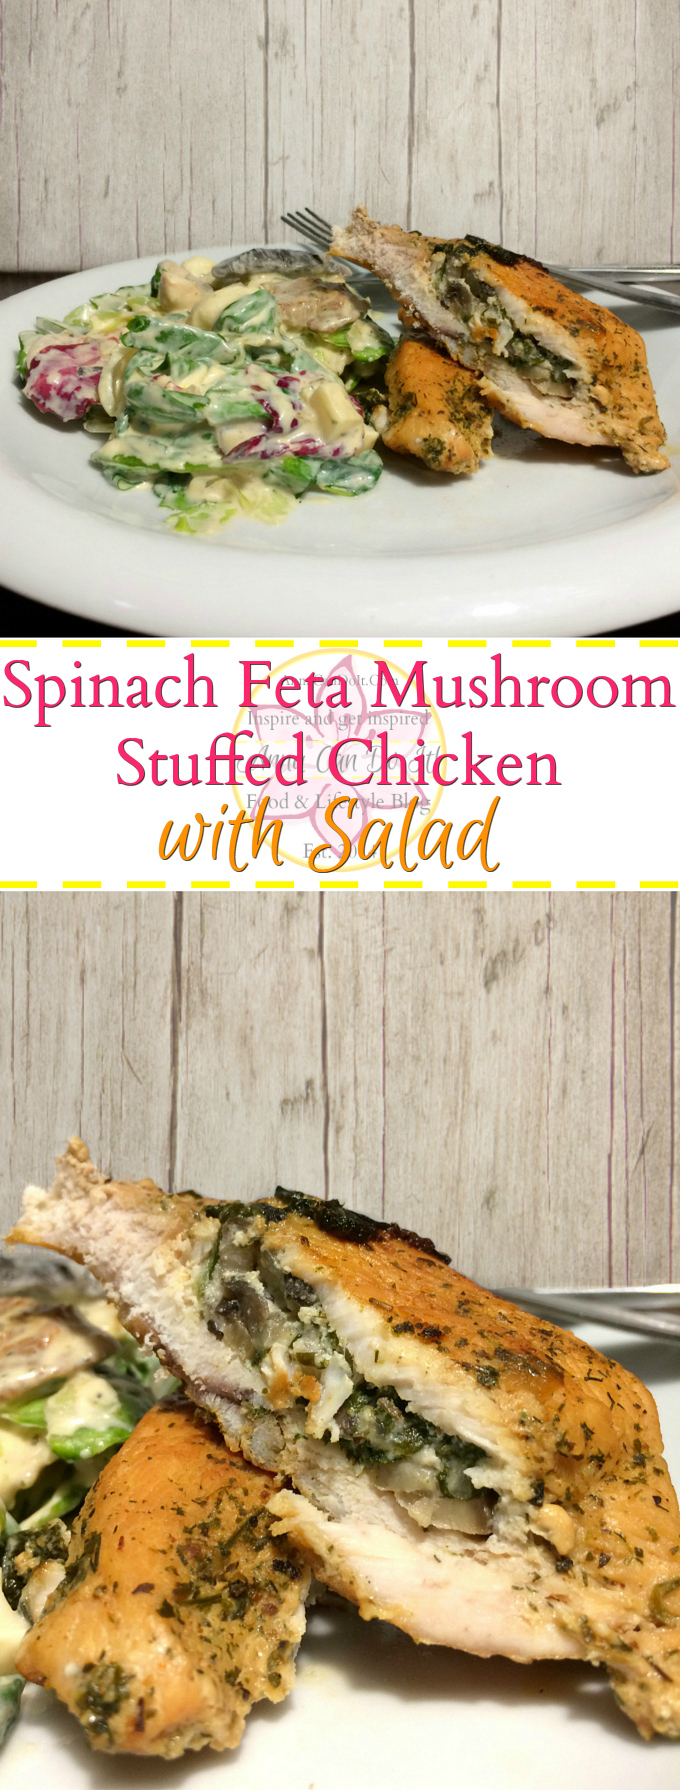 Spinach Feta Mushroom Stuffed Chicken with Salad - Anna Can Do It! - Spinach Feta Mushroom Stuffed Chicken with Salad is a simple and delicious yet healthier dinner recipe. The stuffed chicken itself is a great meal, but top it with this amazing salad, you'll have a true crowd pleaser!